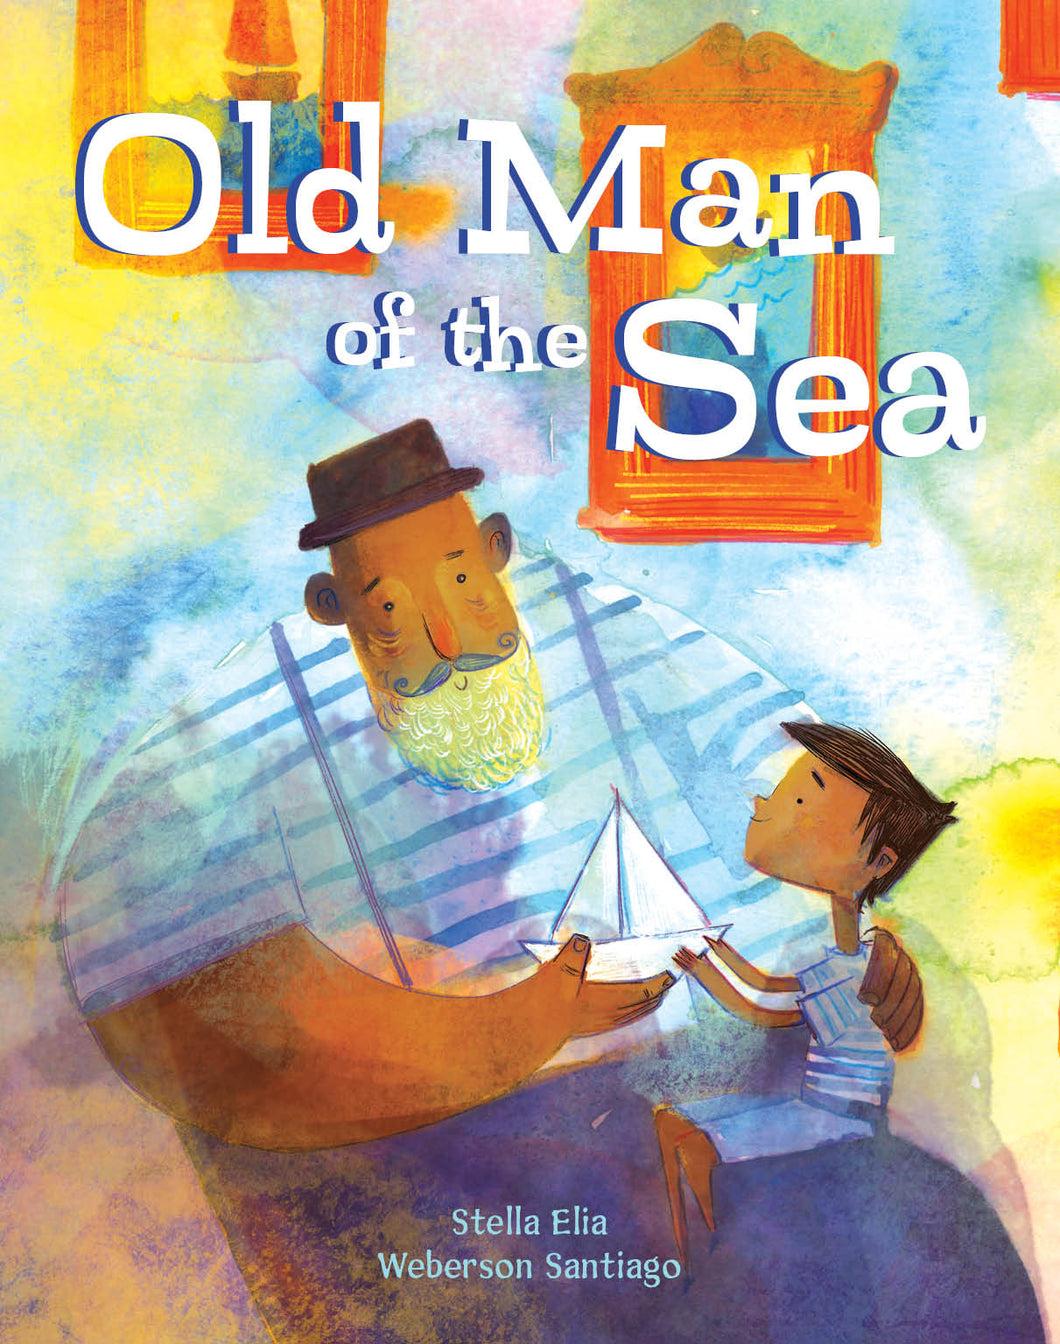 Cover of diverse picture book Old Man of the Sea by Stella Elia and Weberson Santiago